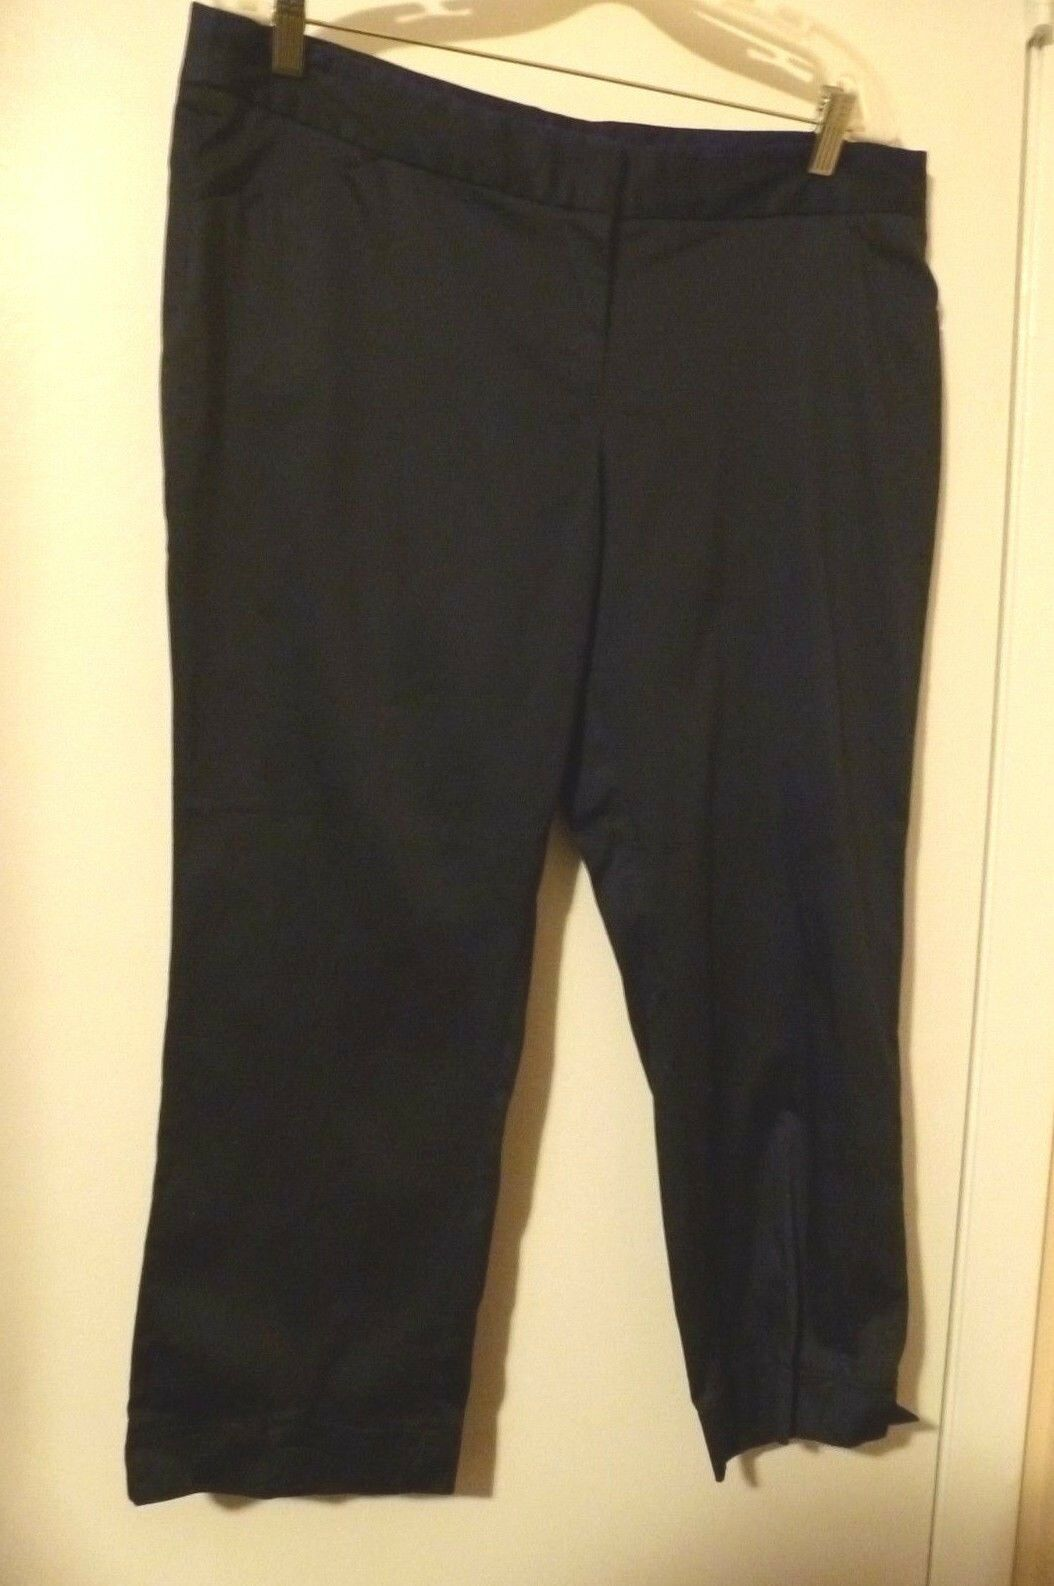 LAUNDRY SHELLI SEGAL Women's NAVY blueE Dress Capri Pants Size 14